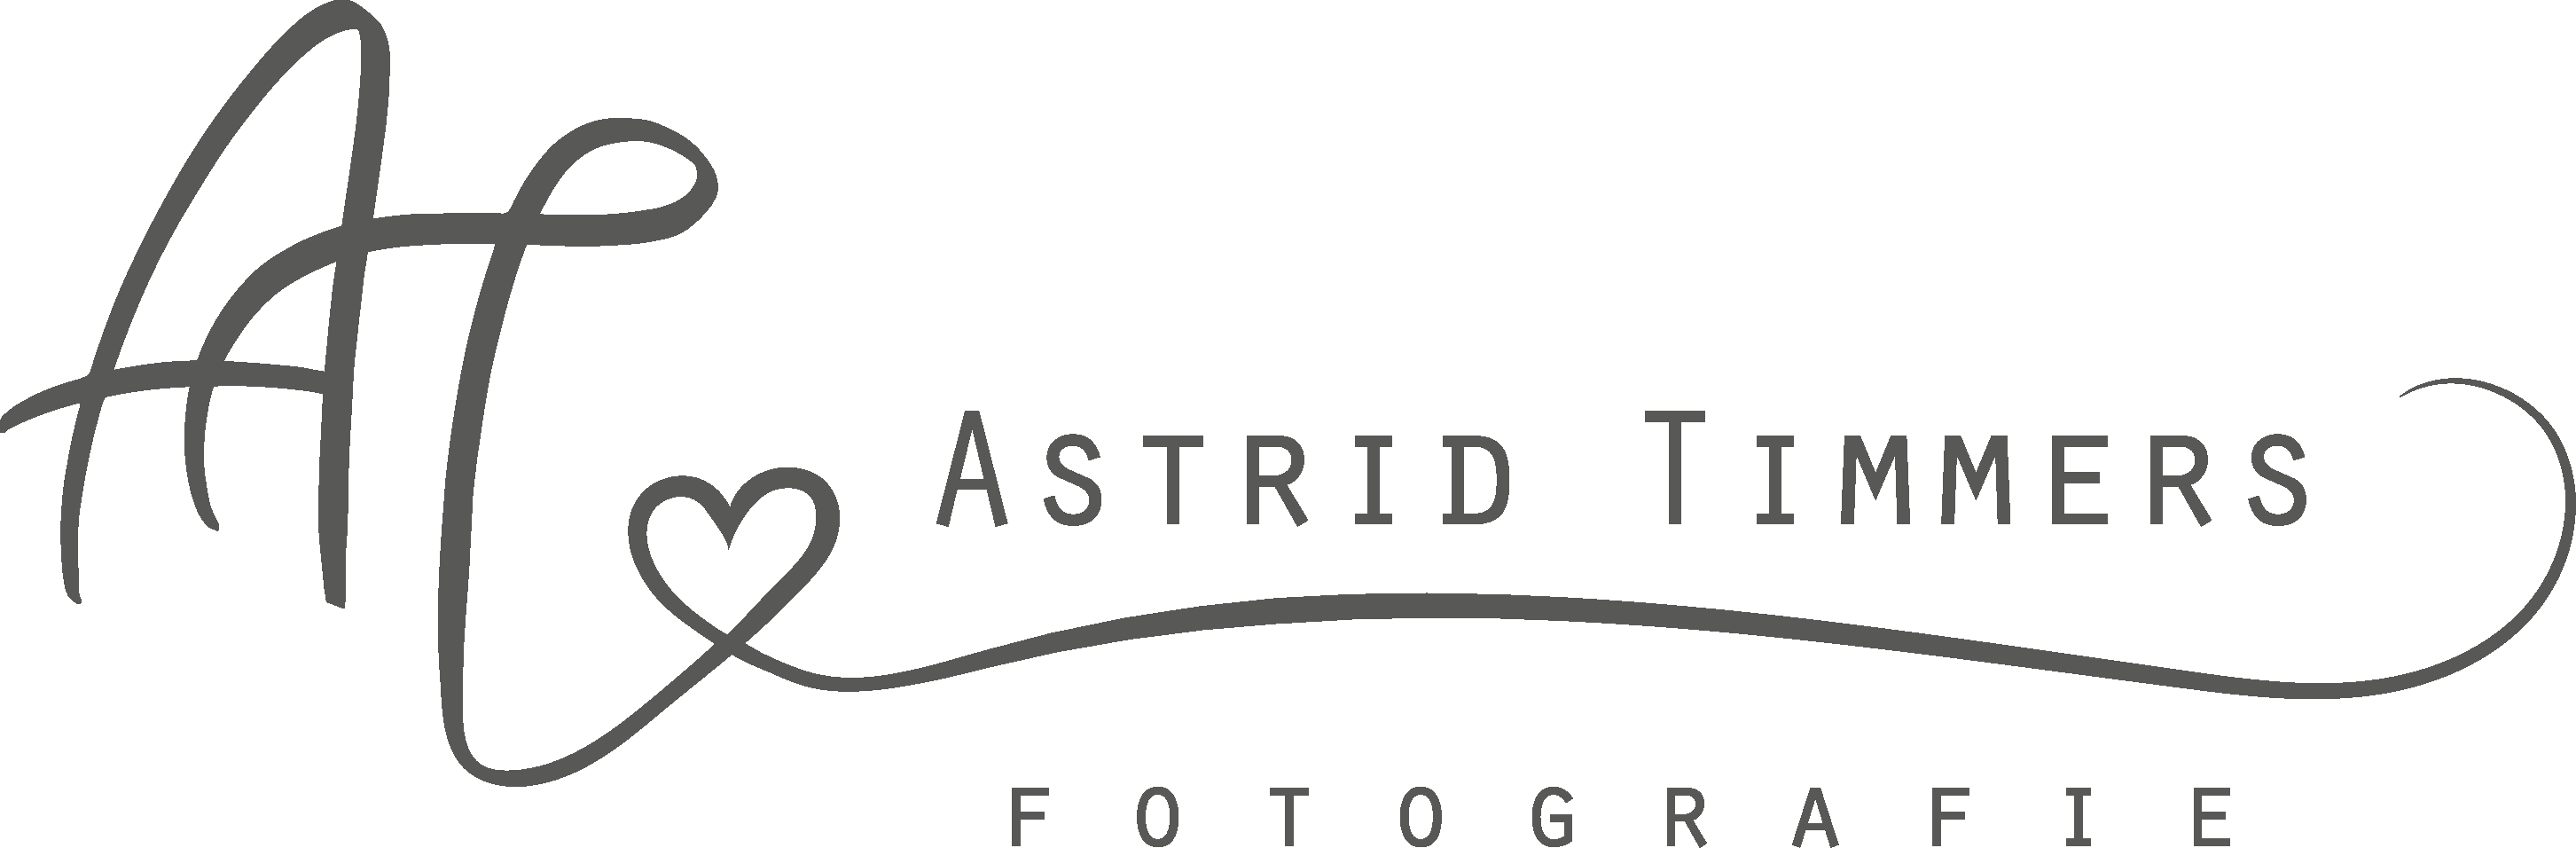 Astrid Timmers Fotografie